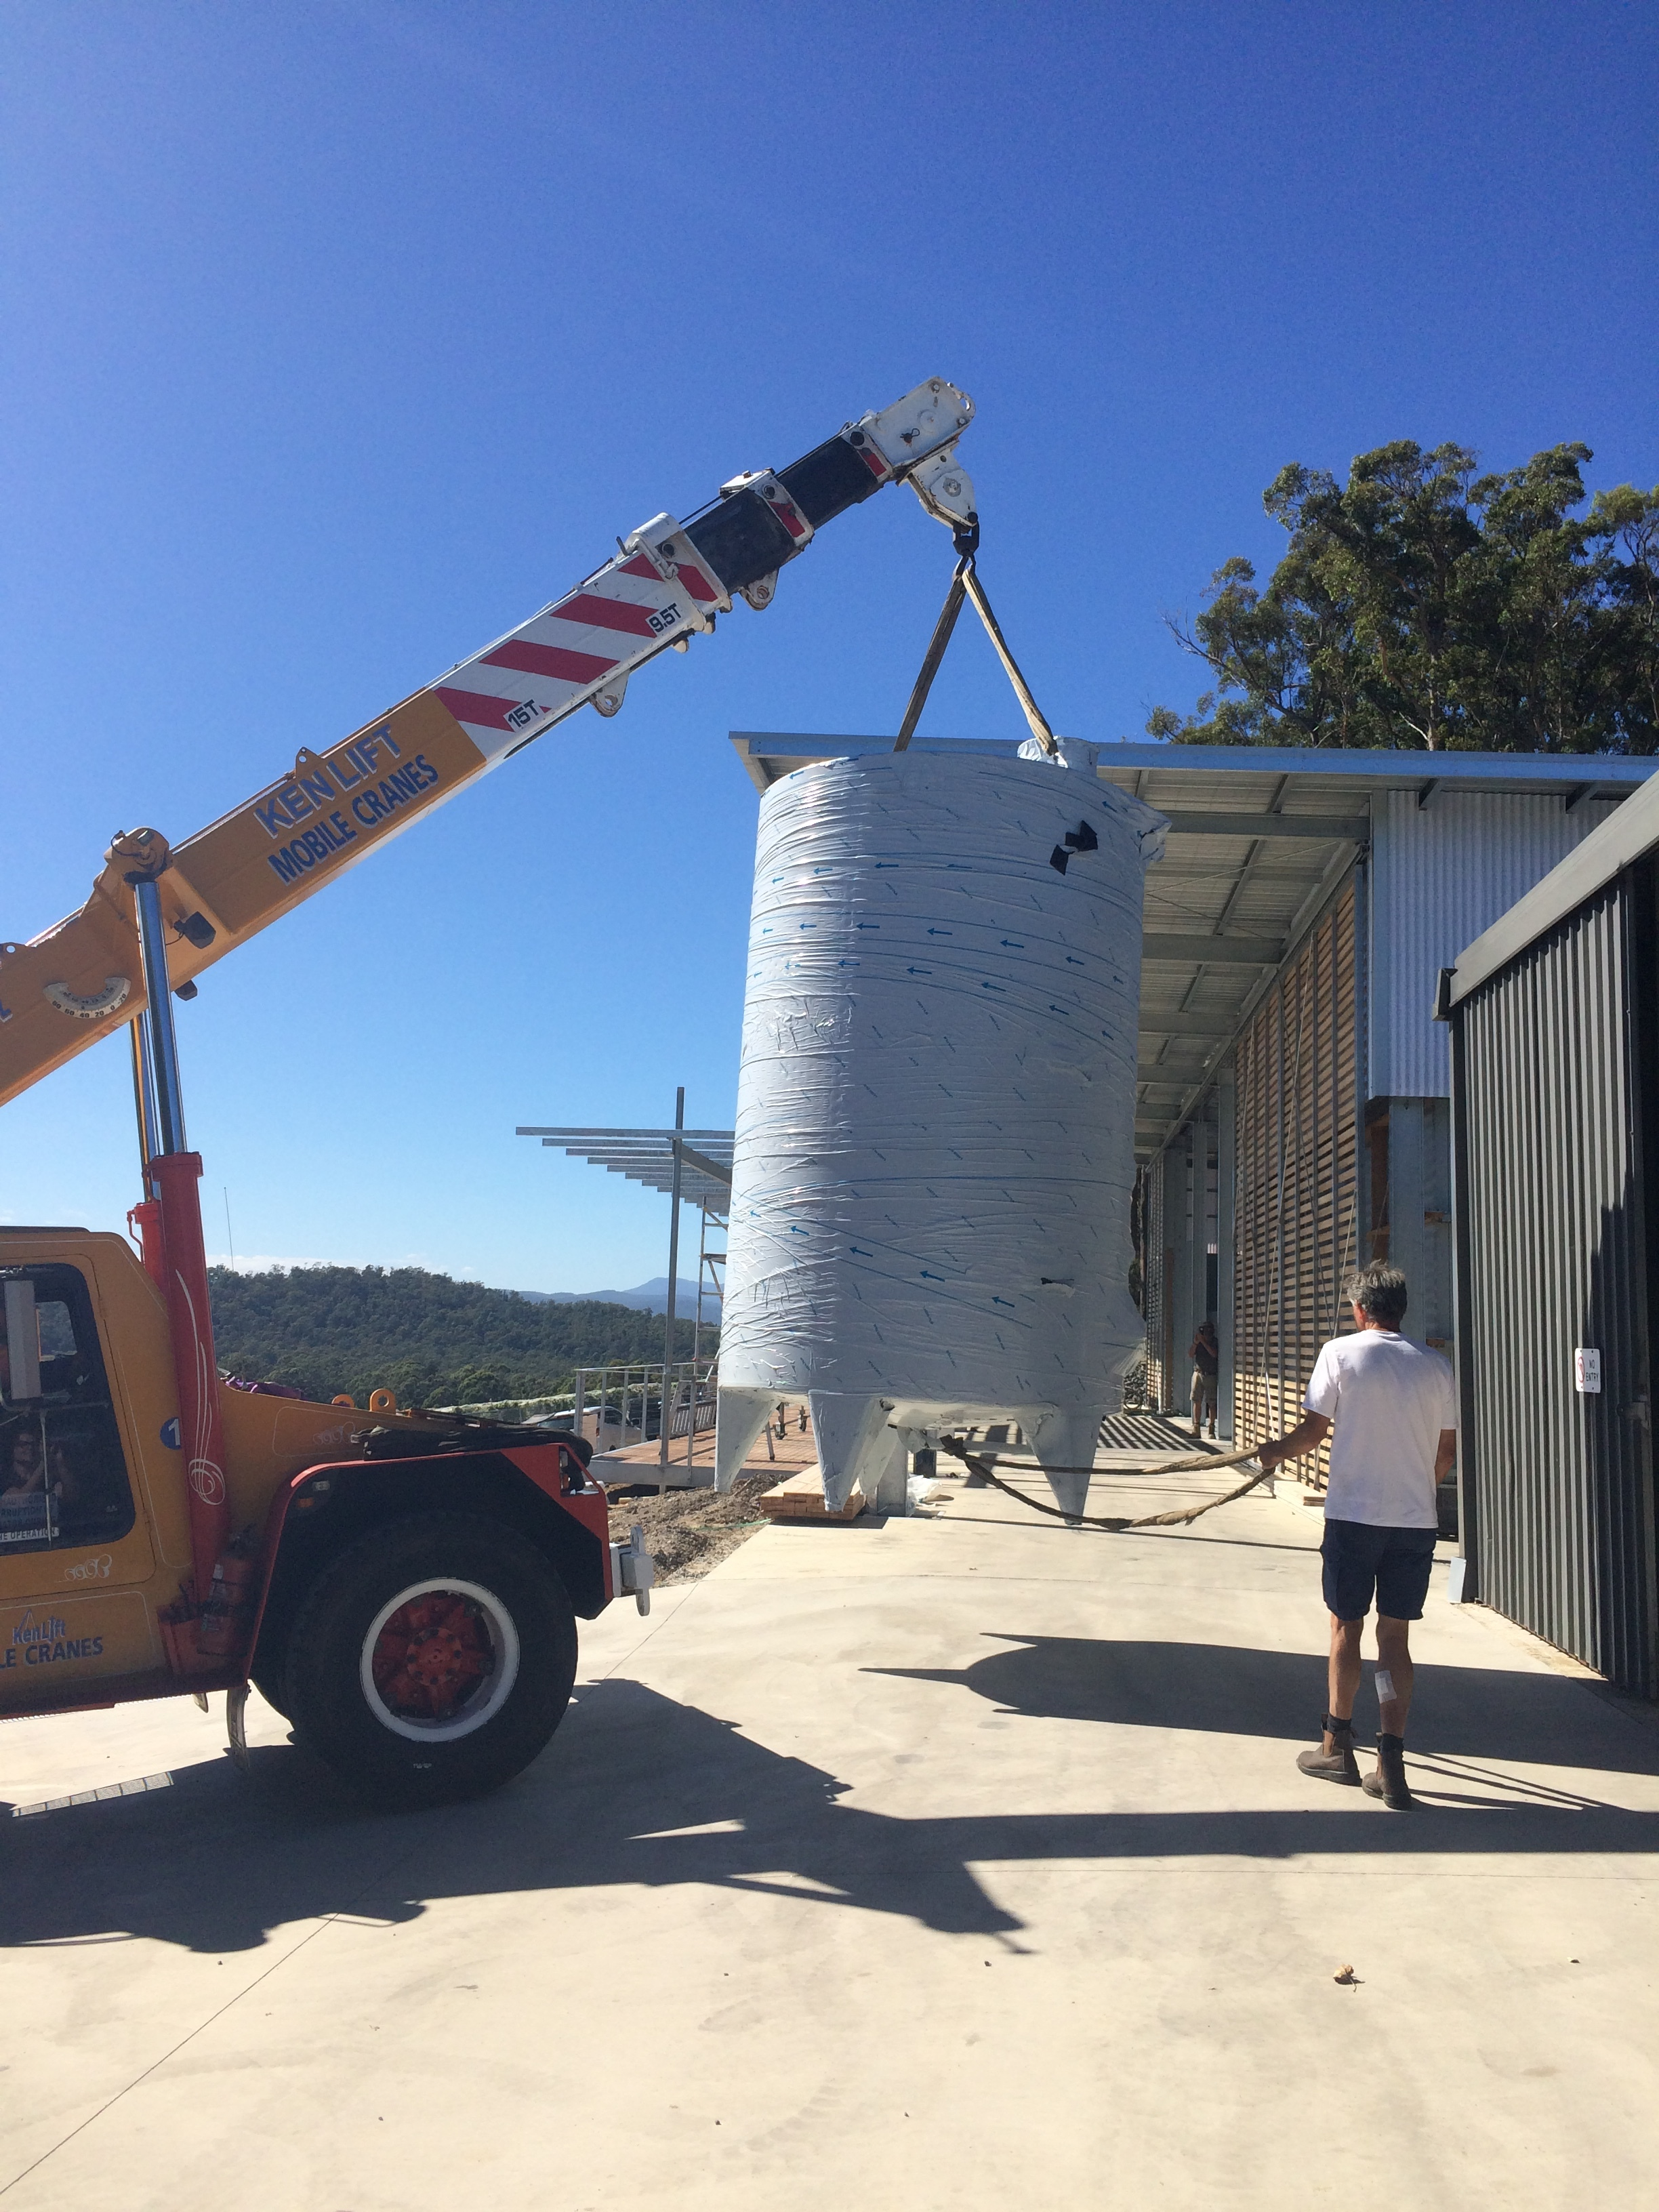 Just in time delivery. Our tanks arrived from Italy to be craned in to the winery.